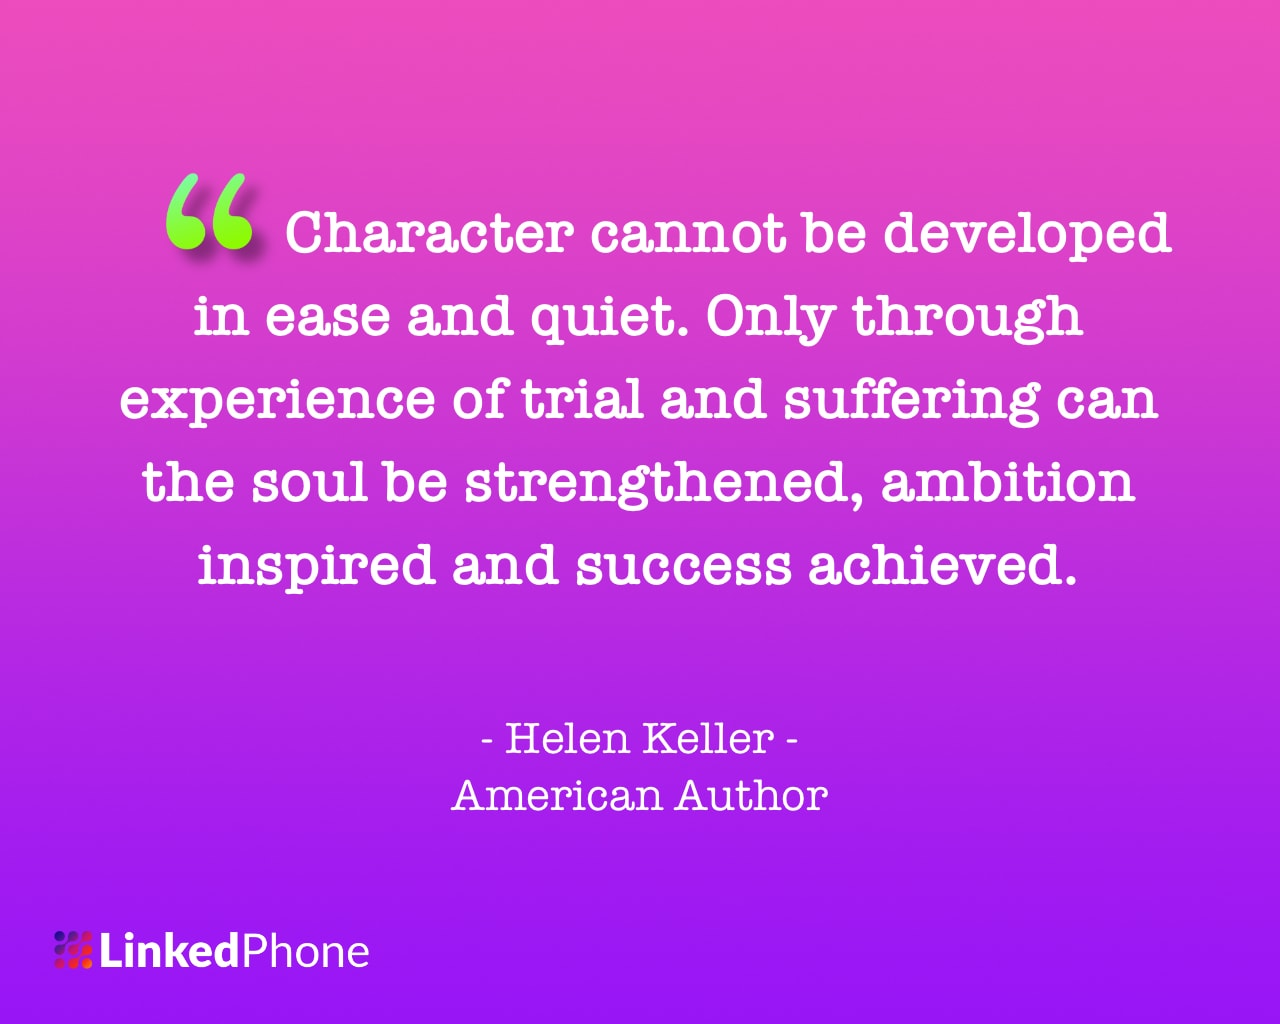 Helen Keller - Motivational Inspirational Quotes and Sayings